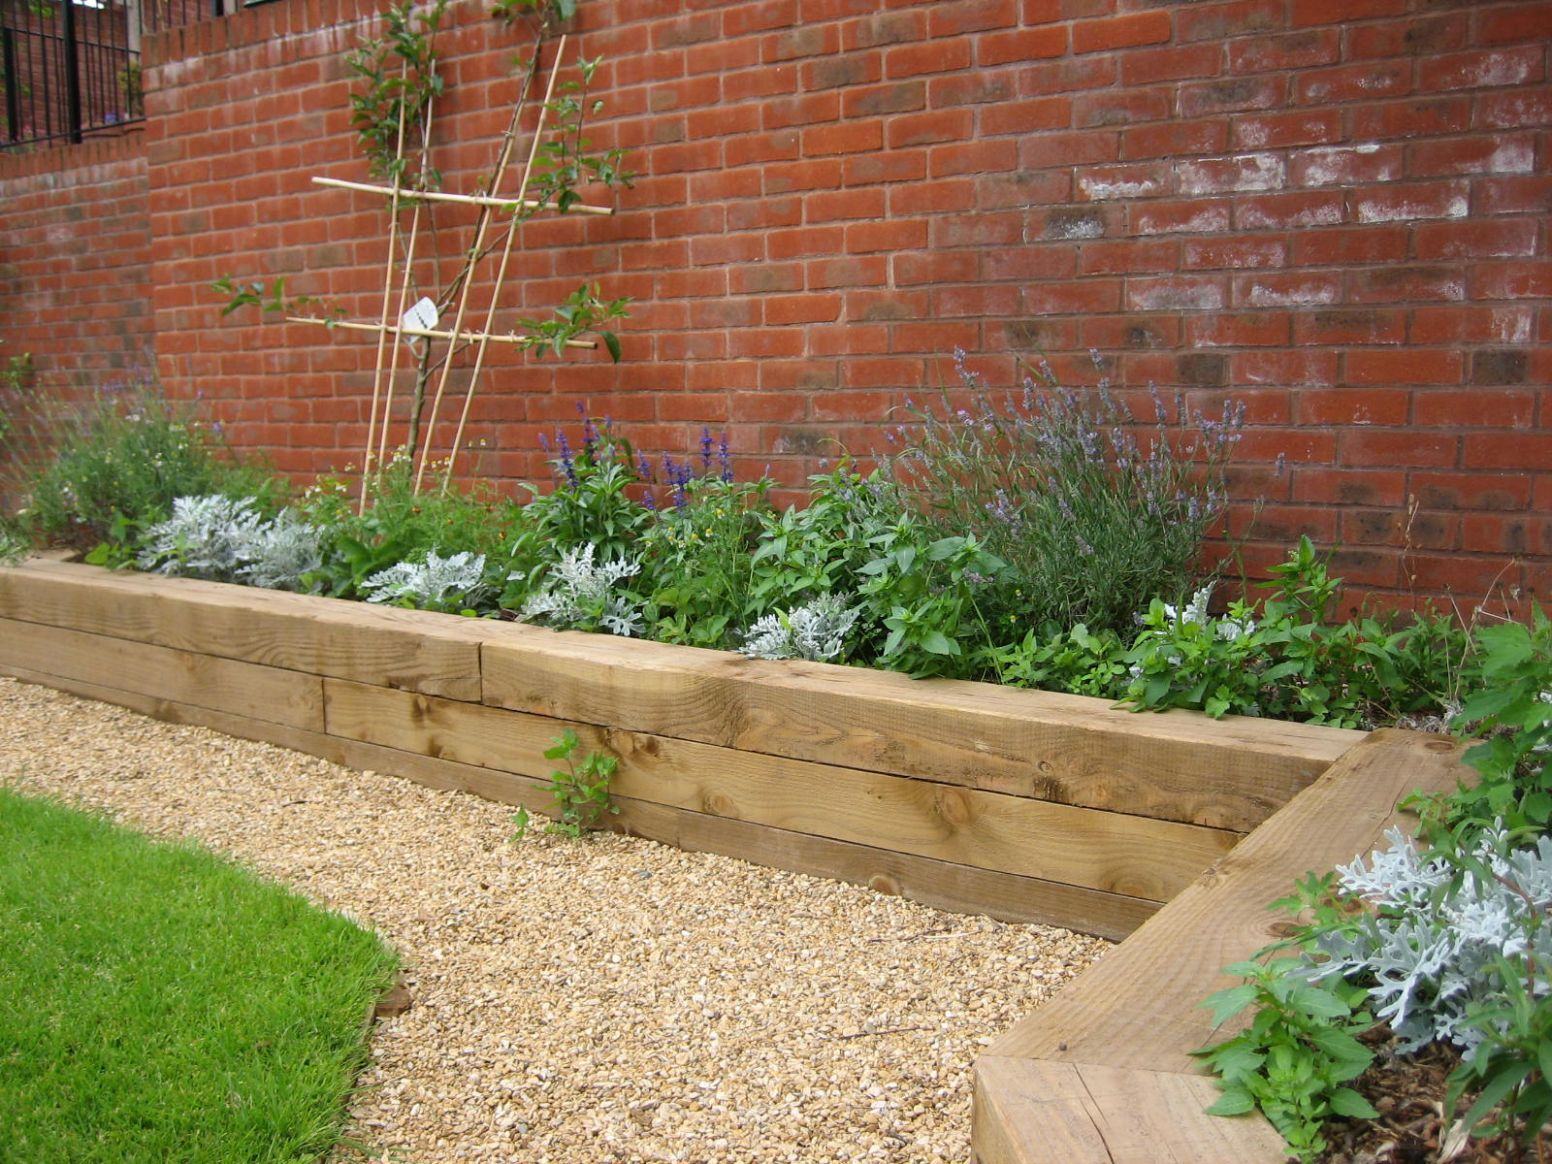 Garden Borders Archives - Good Gardening - garden ideas raised borders